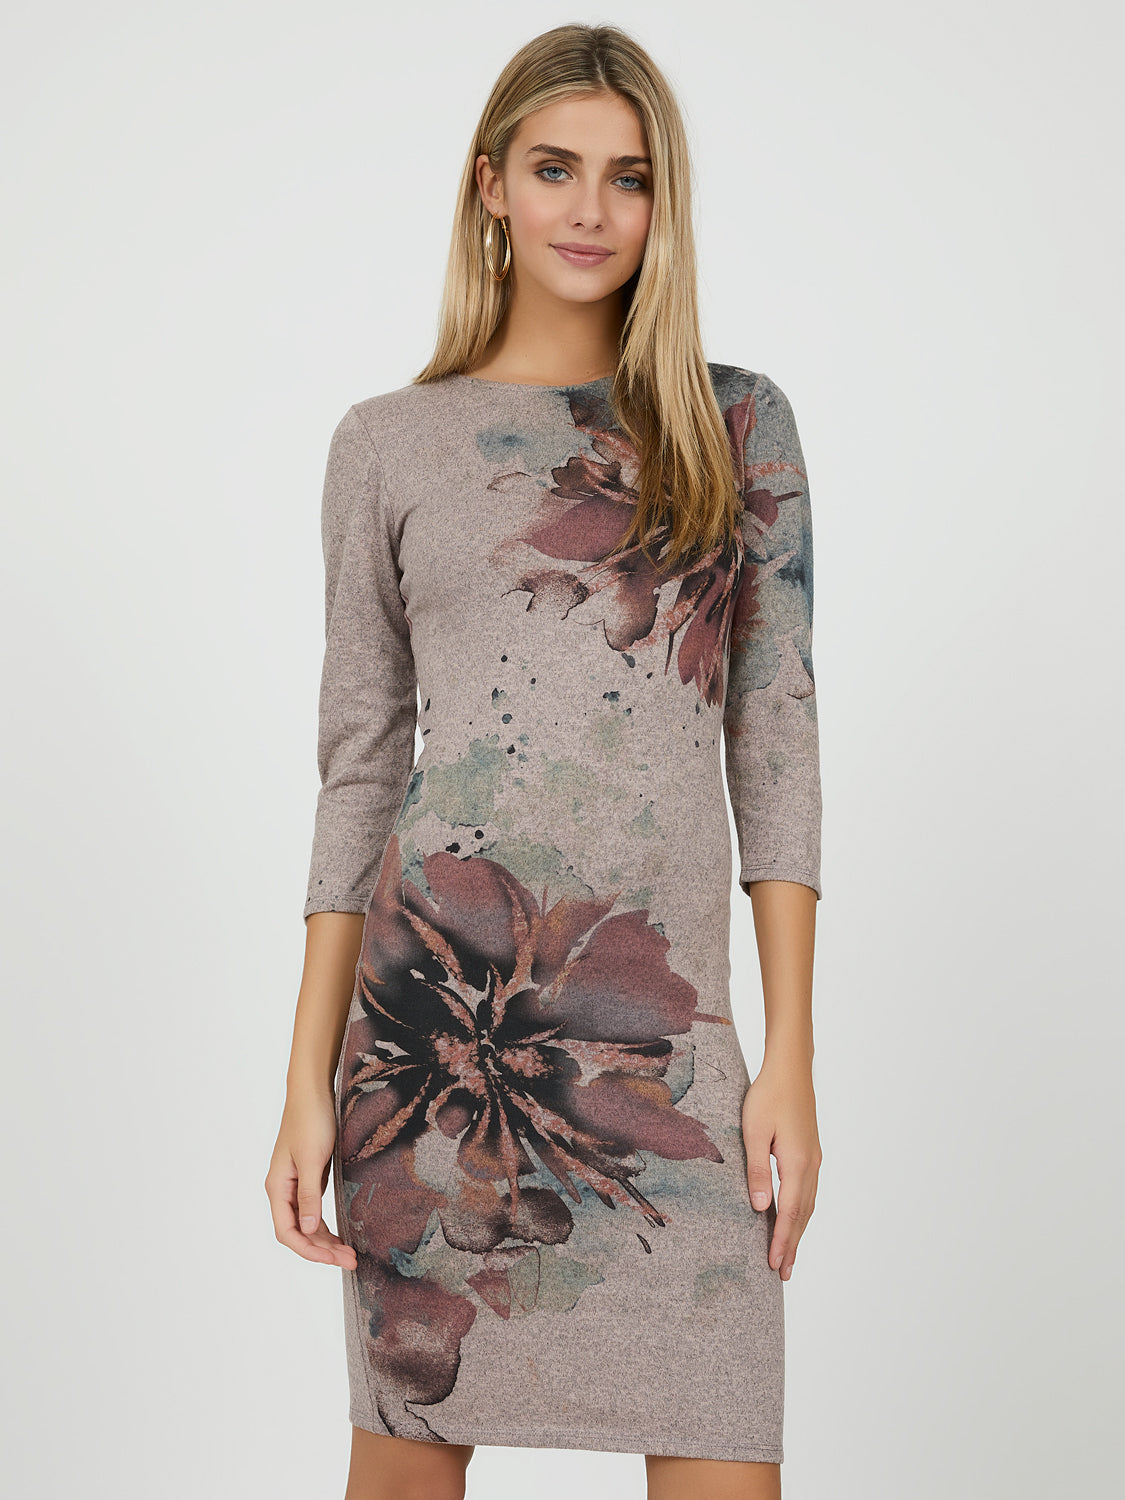 ¾ Sleeve Floral Sheath Dress